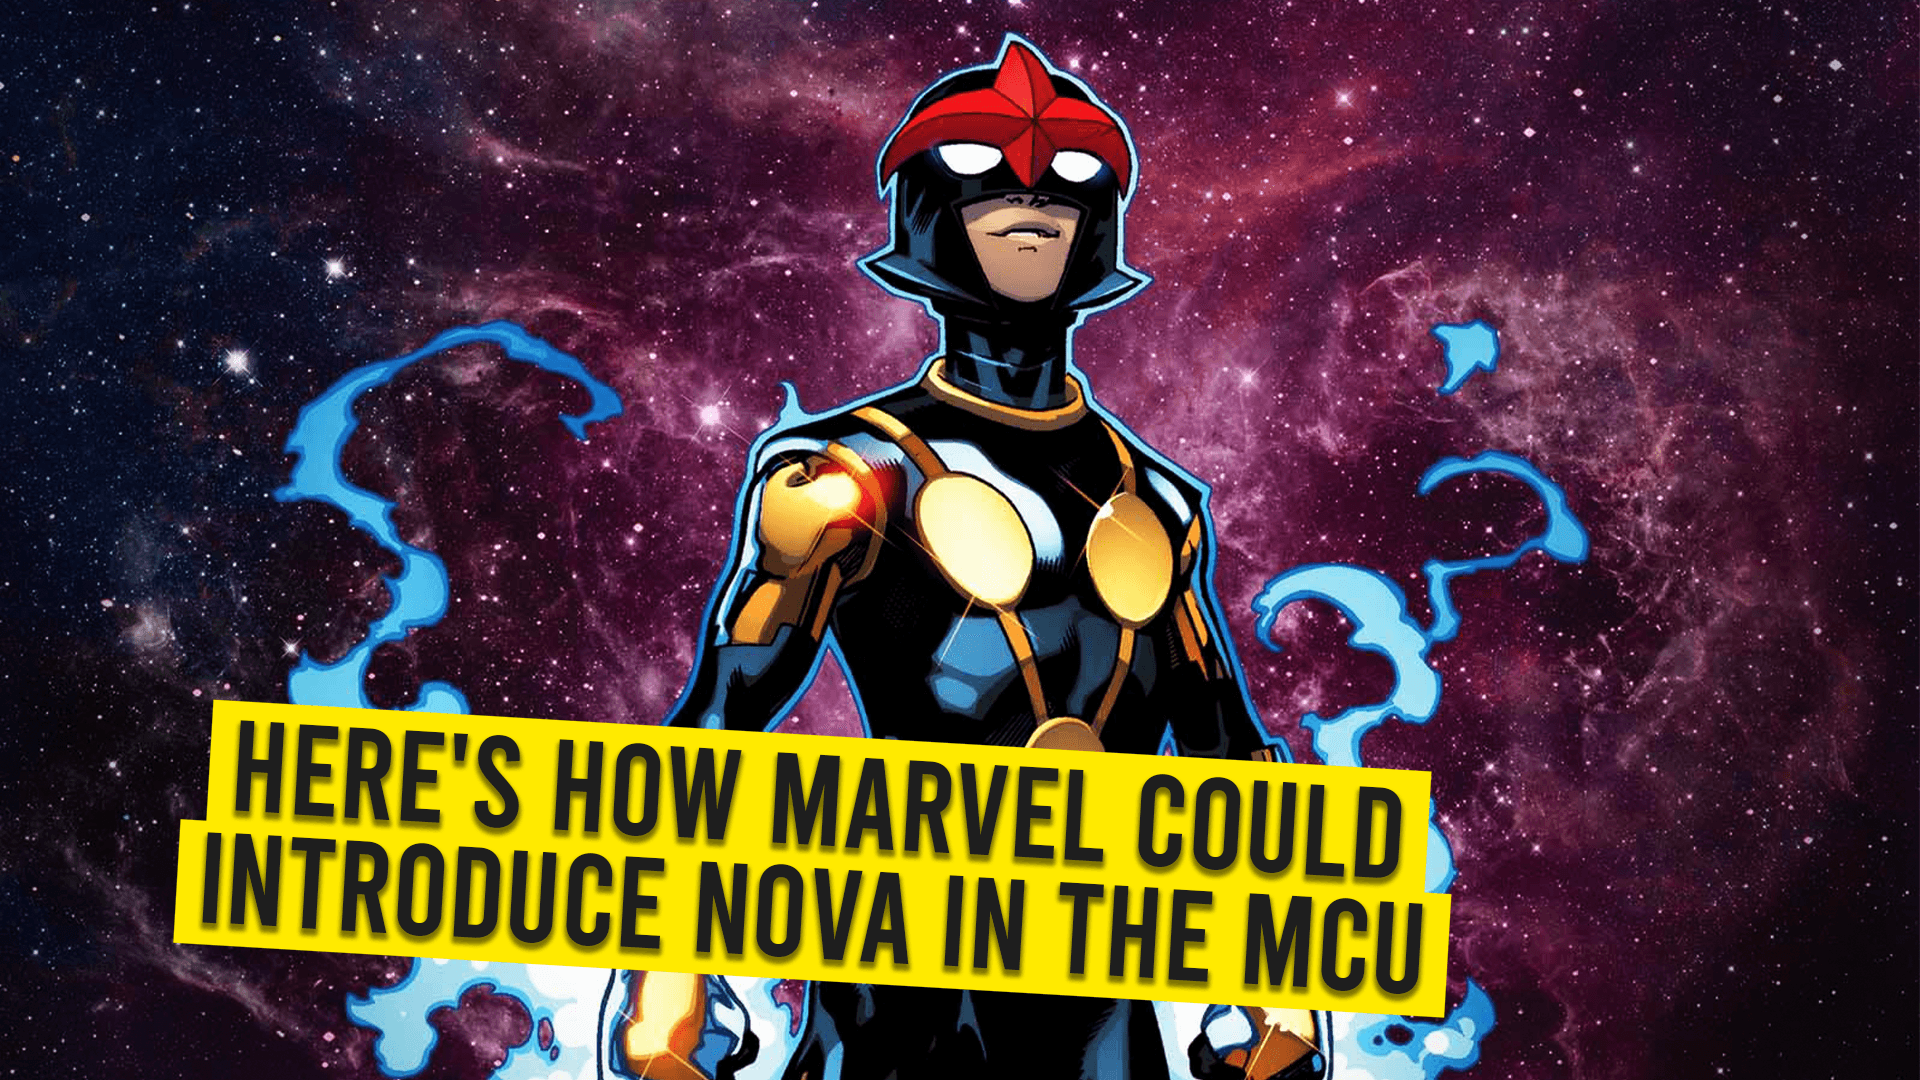 Here's How Marvel Could Introduce Nova In The MCU